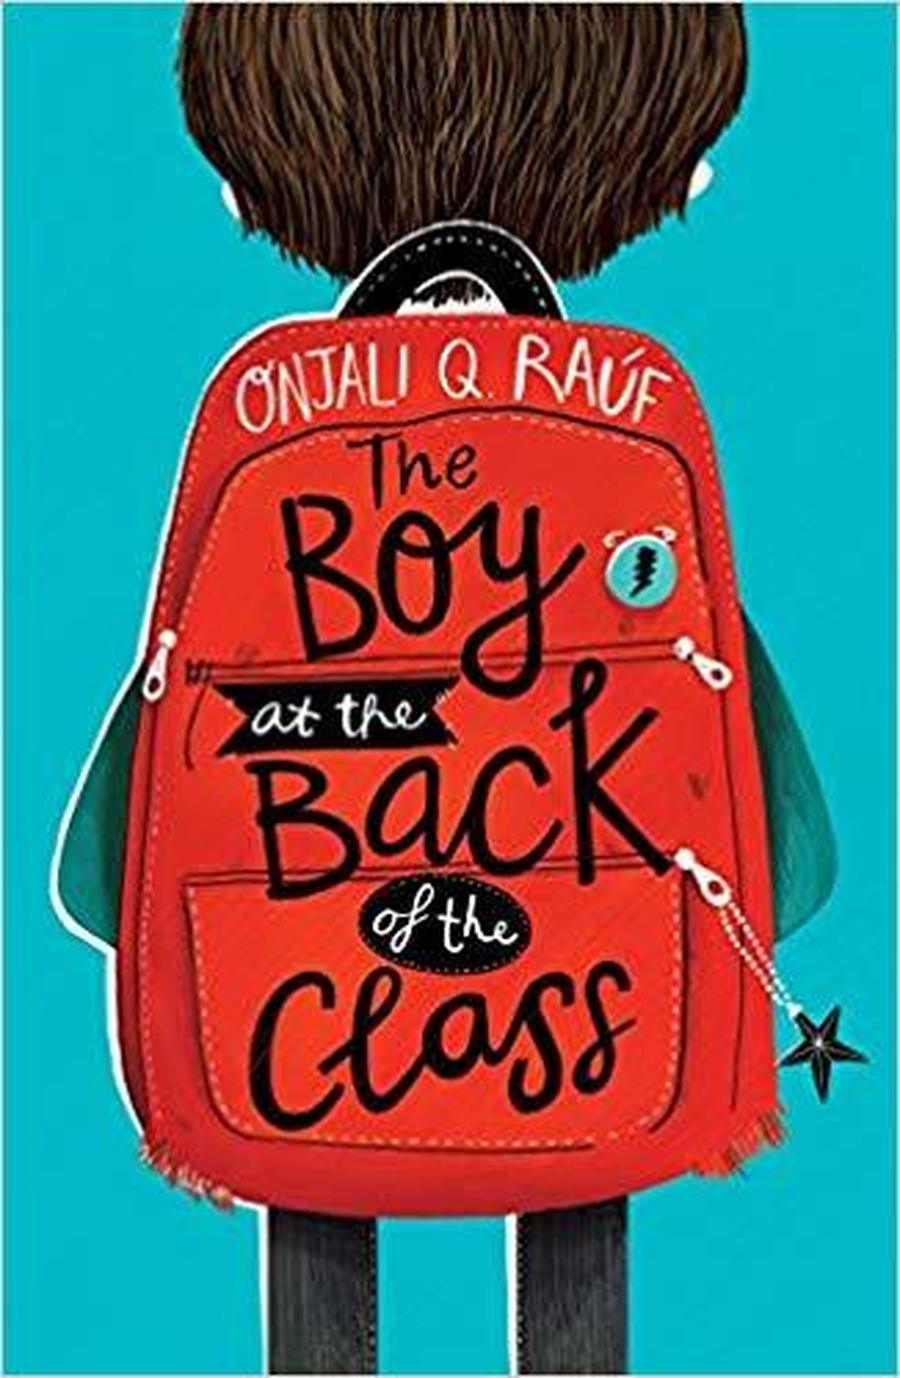 The Boy at the Back of the Class -Onjali Q Raúf